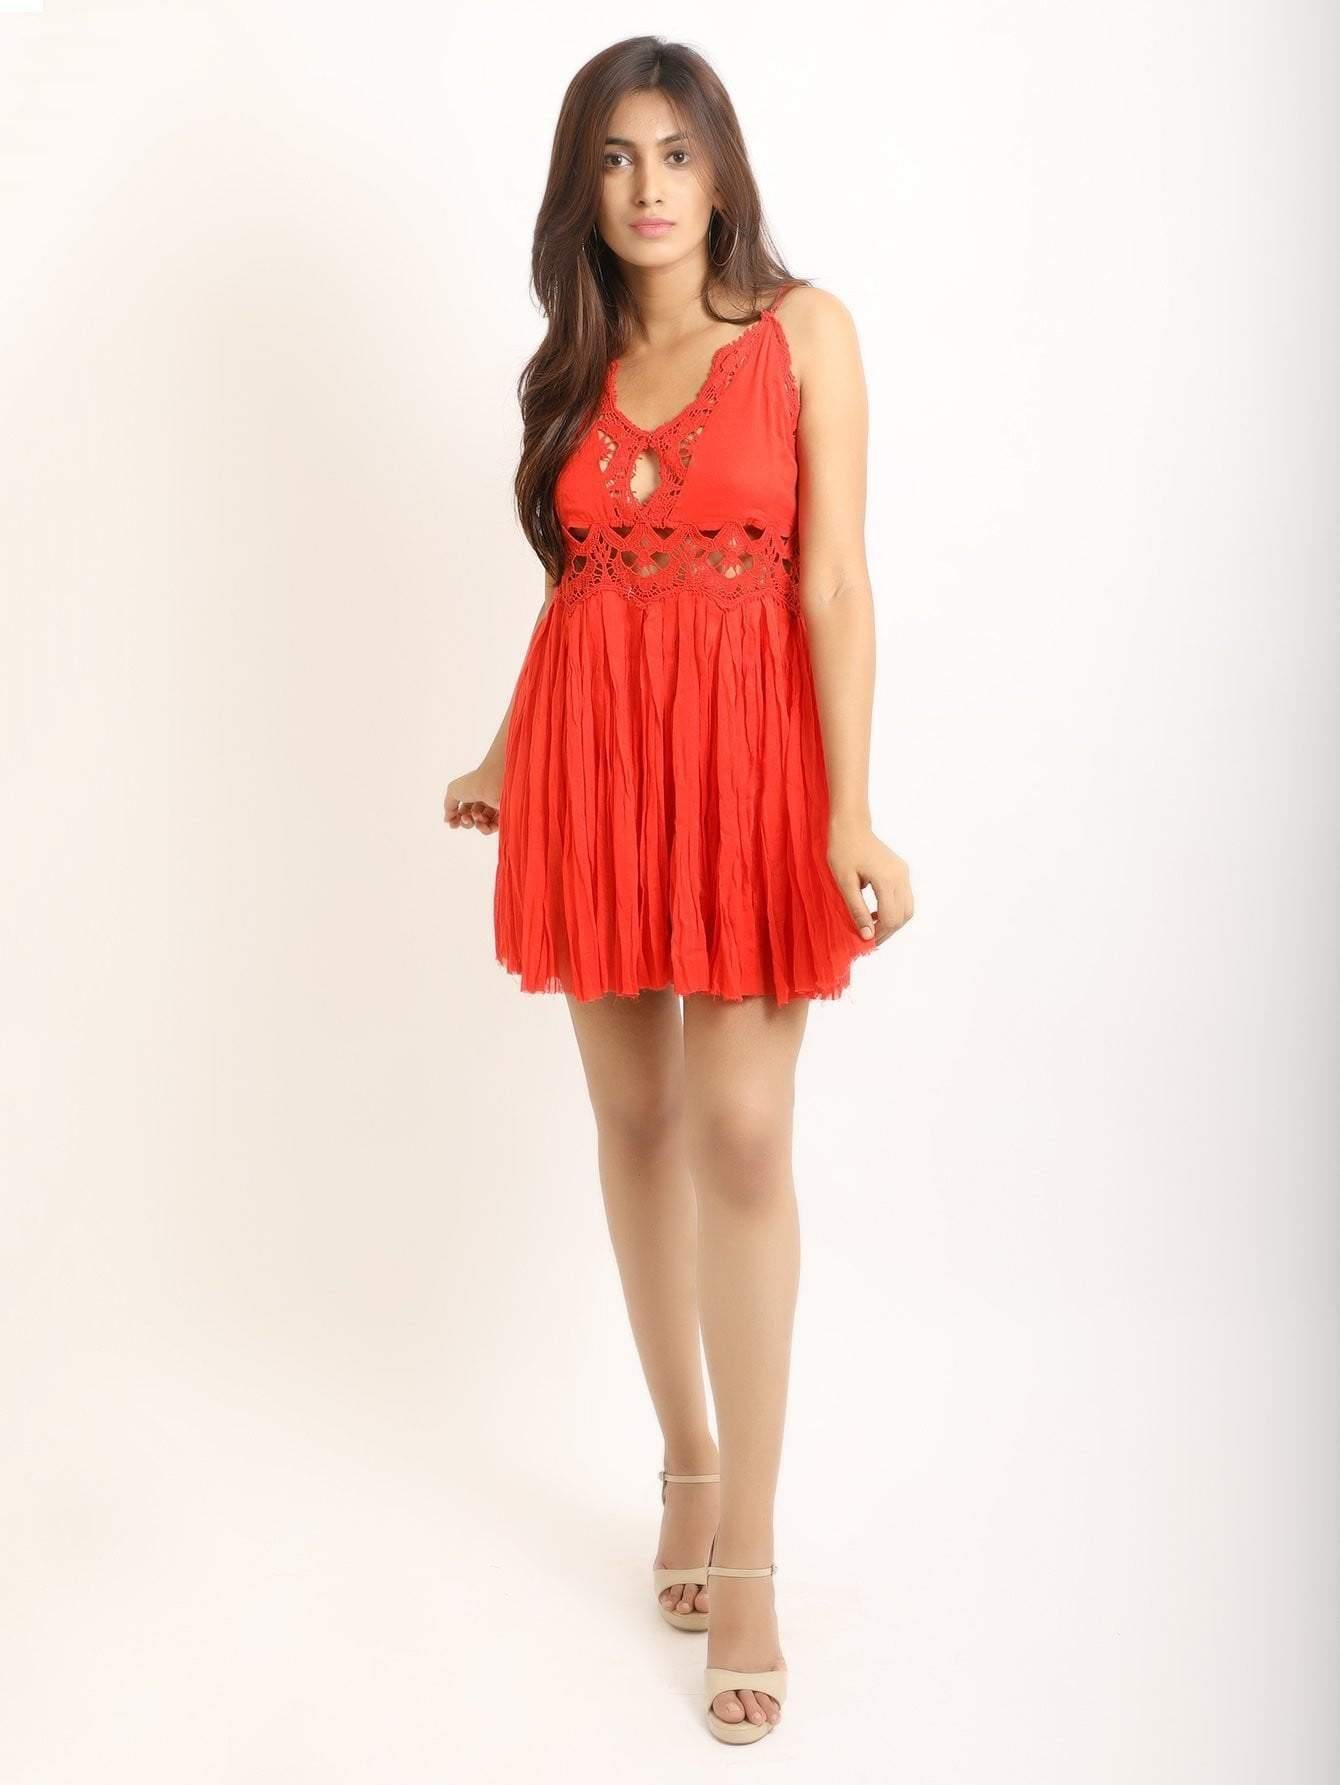 Red Cami Dress With Lace Trims - Dresses - Zooomberg - Zoomberg